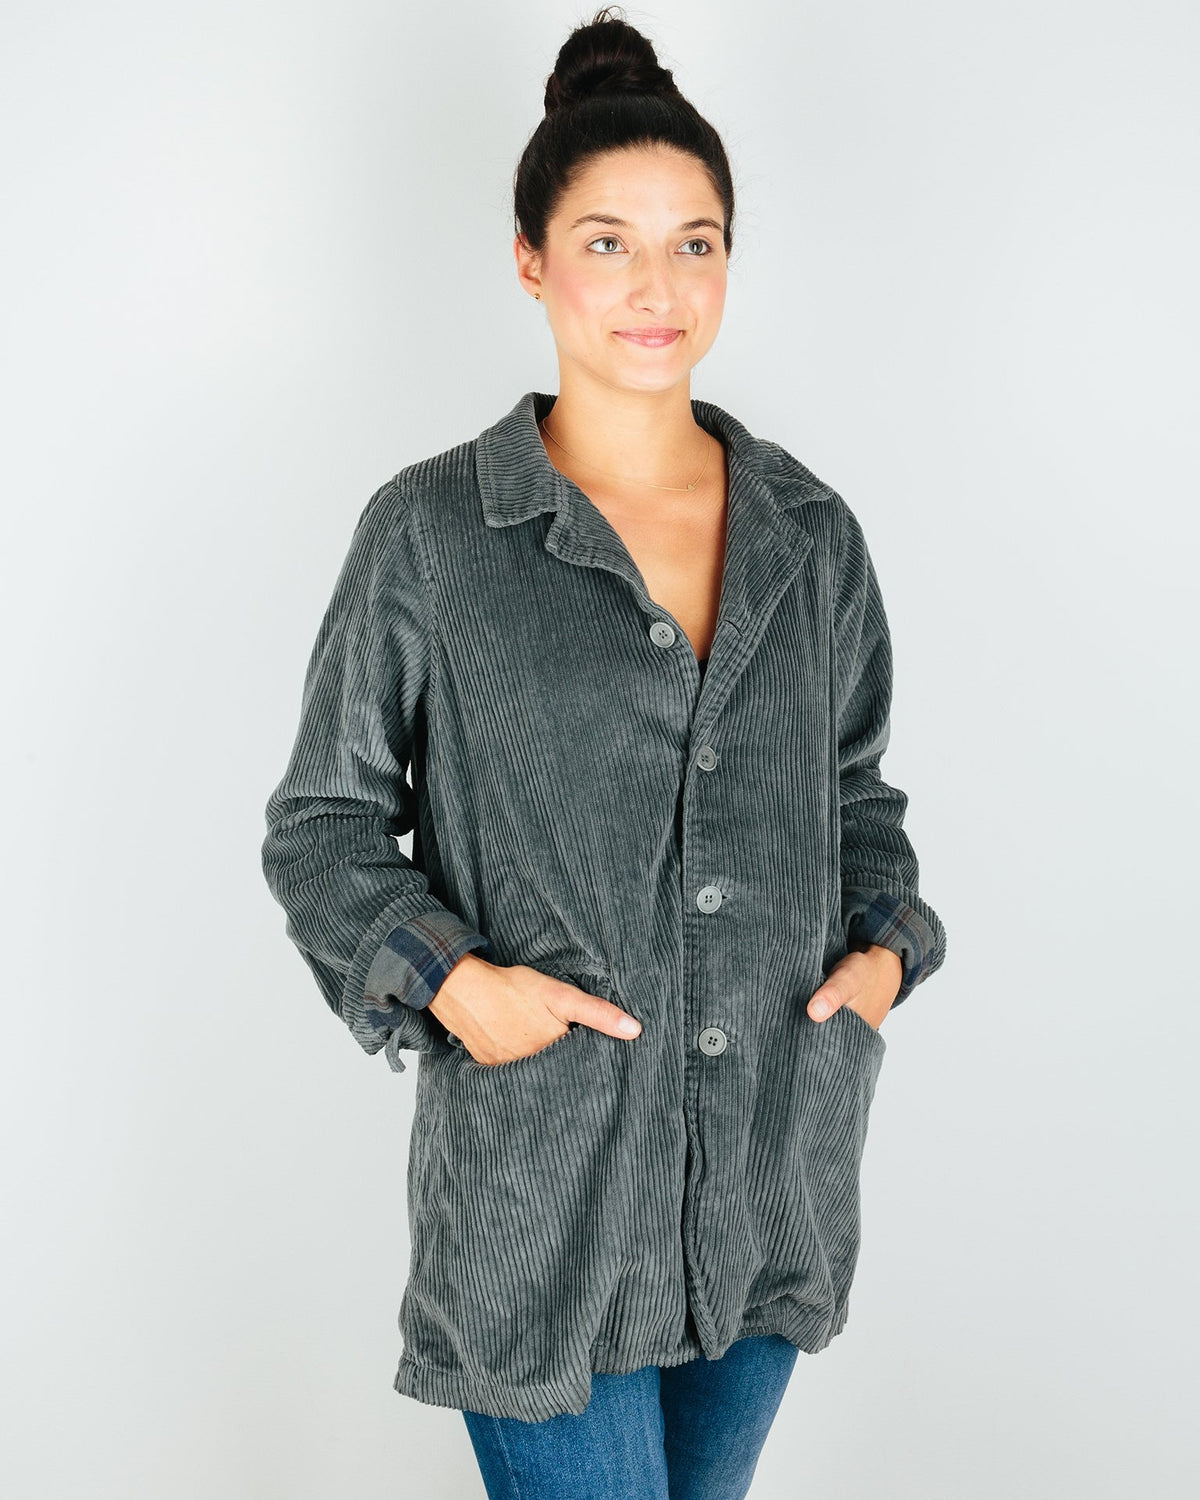 CP Shades Outerwear Regan Coat in Iron Wide Wale Cord